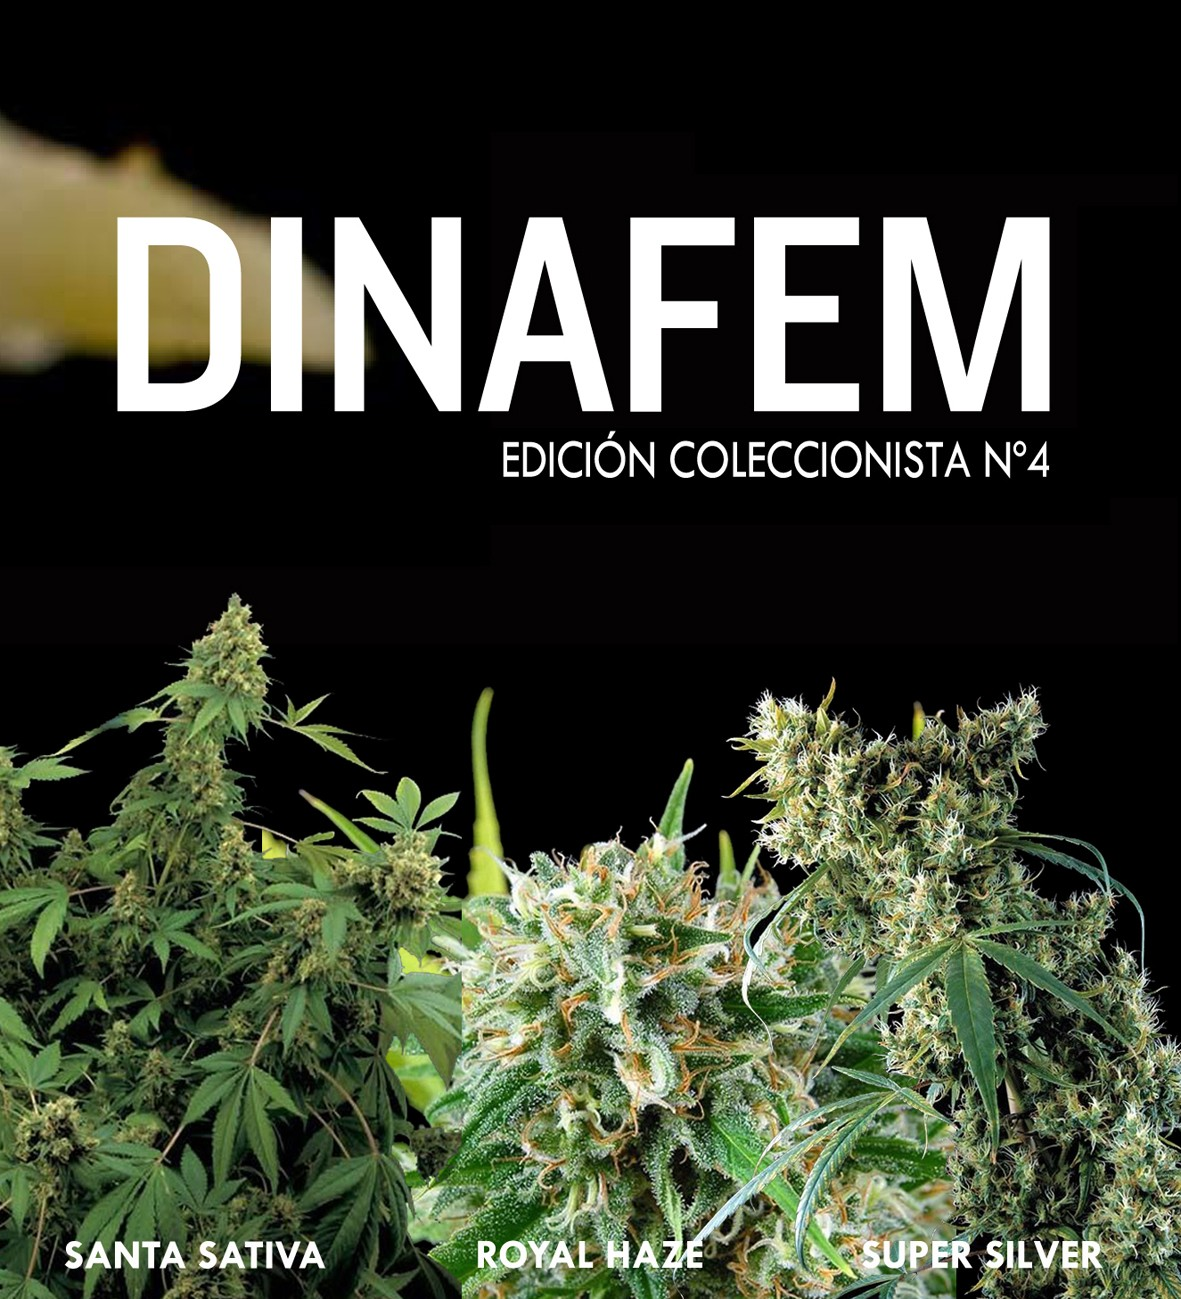 Dinafem collector # 4 6 graines